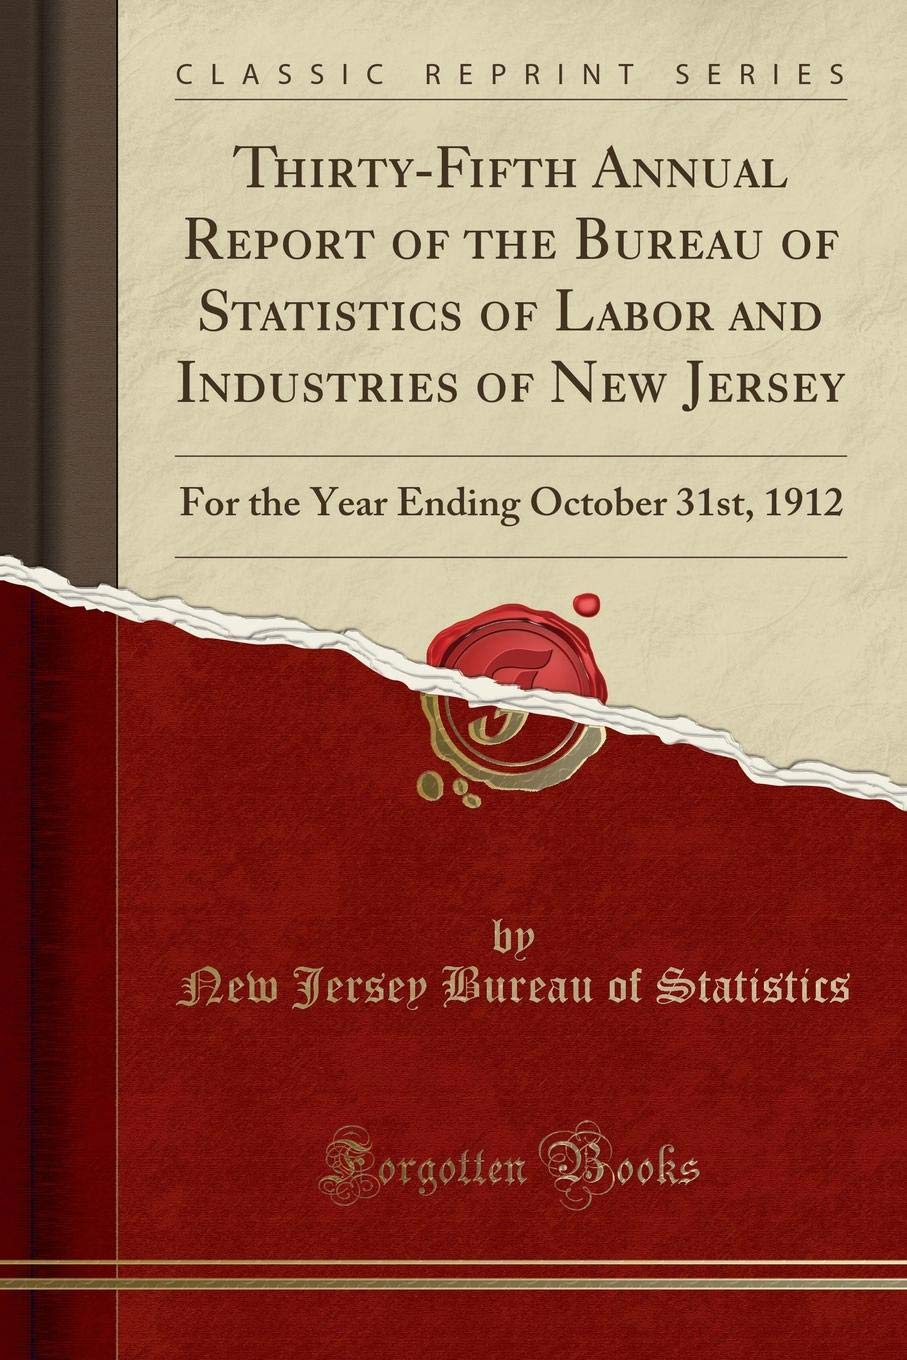 Thirty-Fifth Annual Report of the Bureau of Statistics of Labor and Industries of New Jersey: For the Year Ending October 31st, 1912 (Classic Reprint) pdf epub